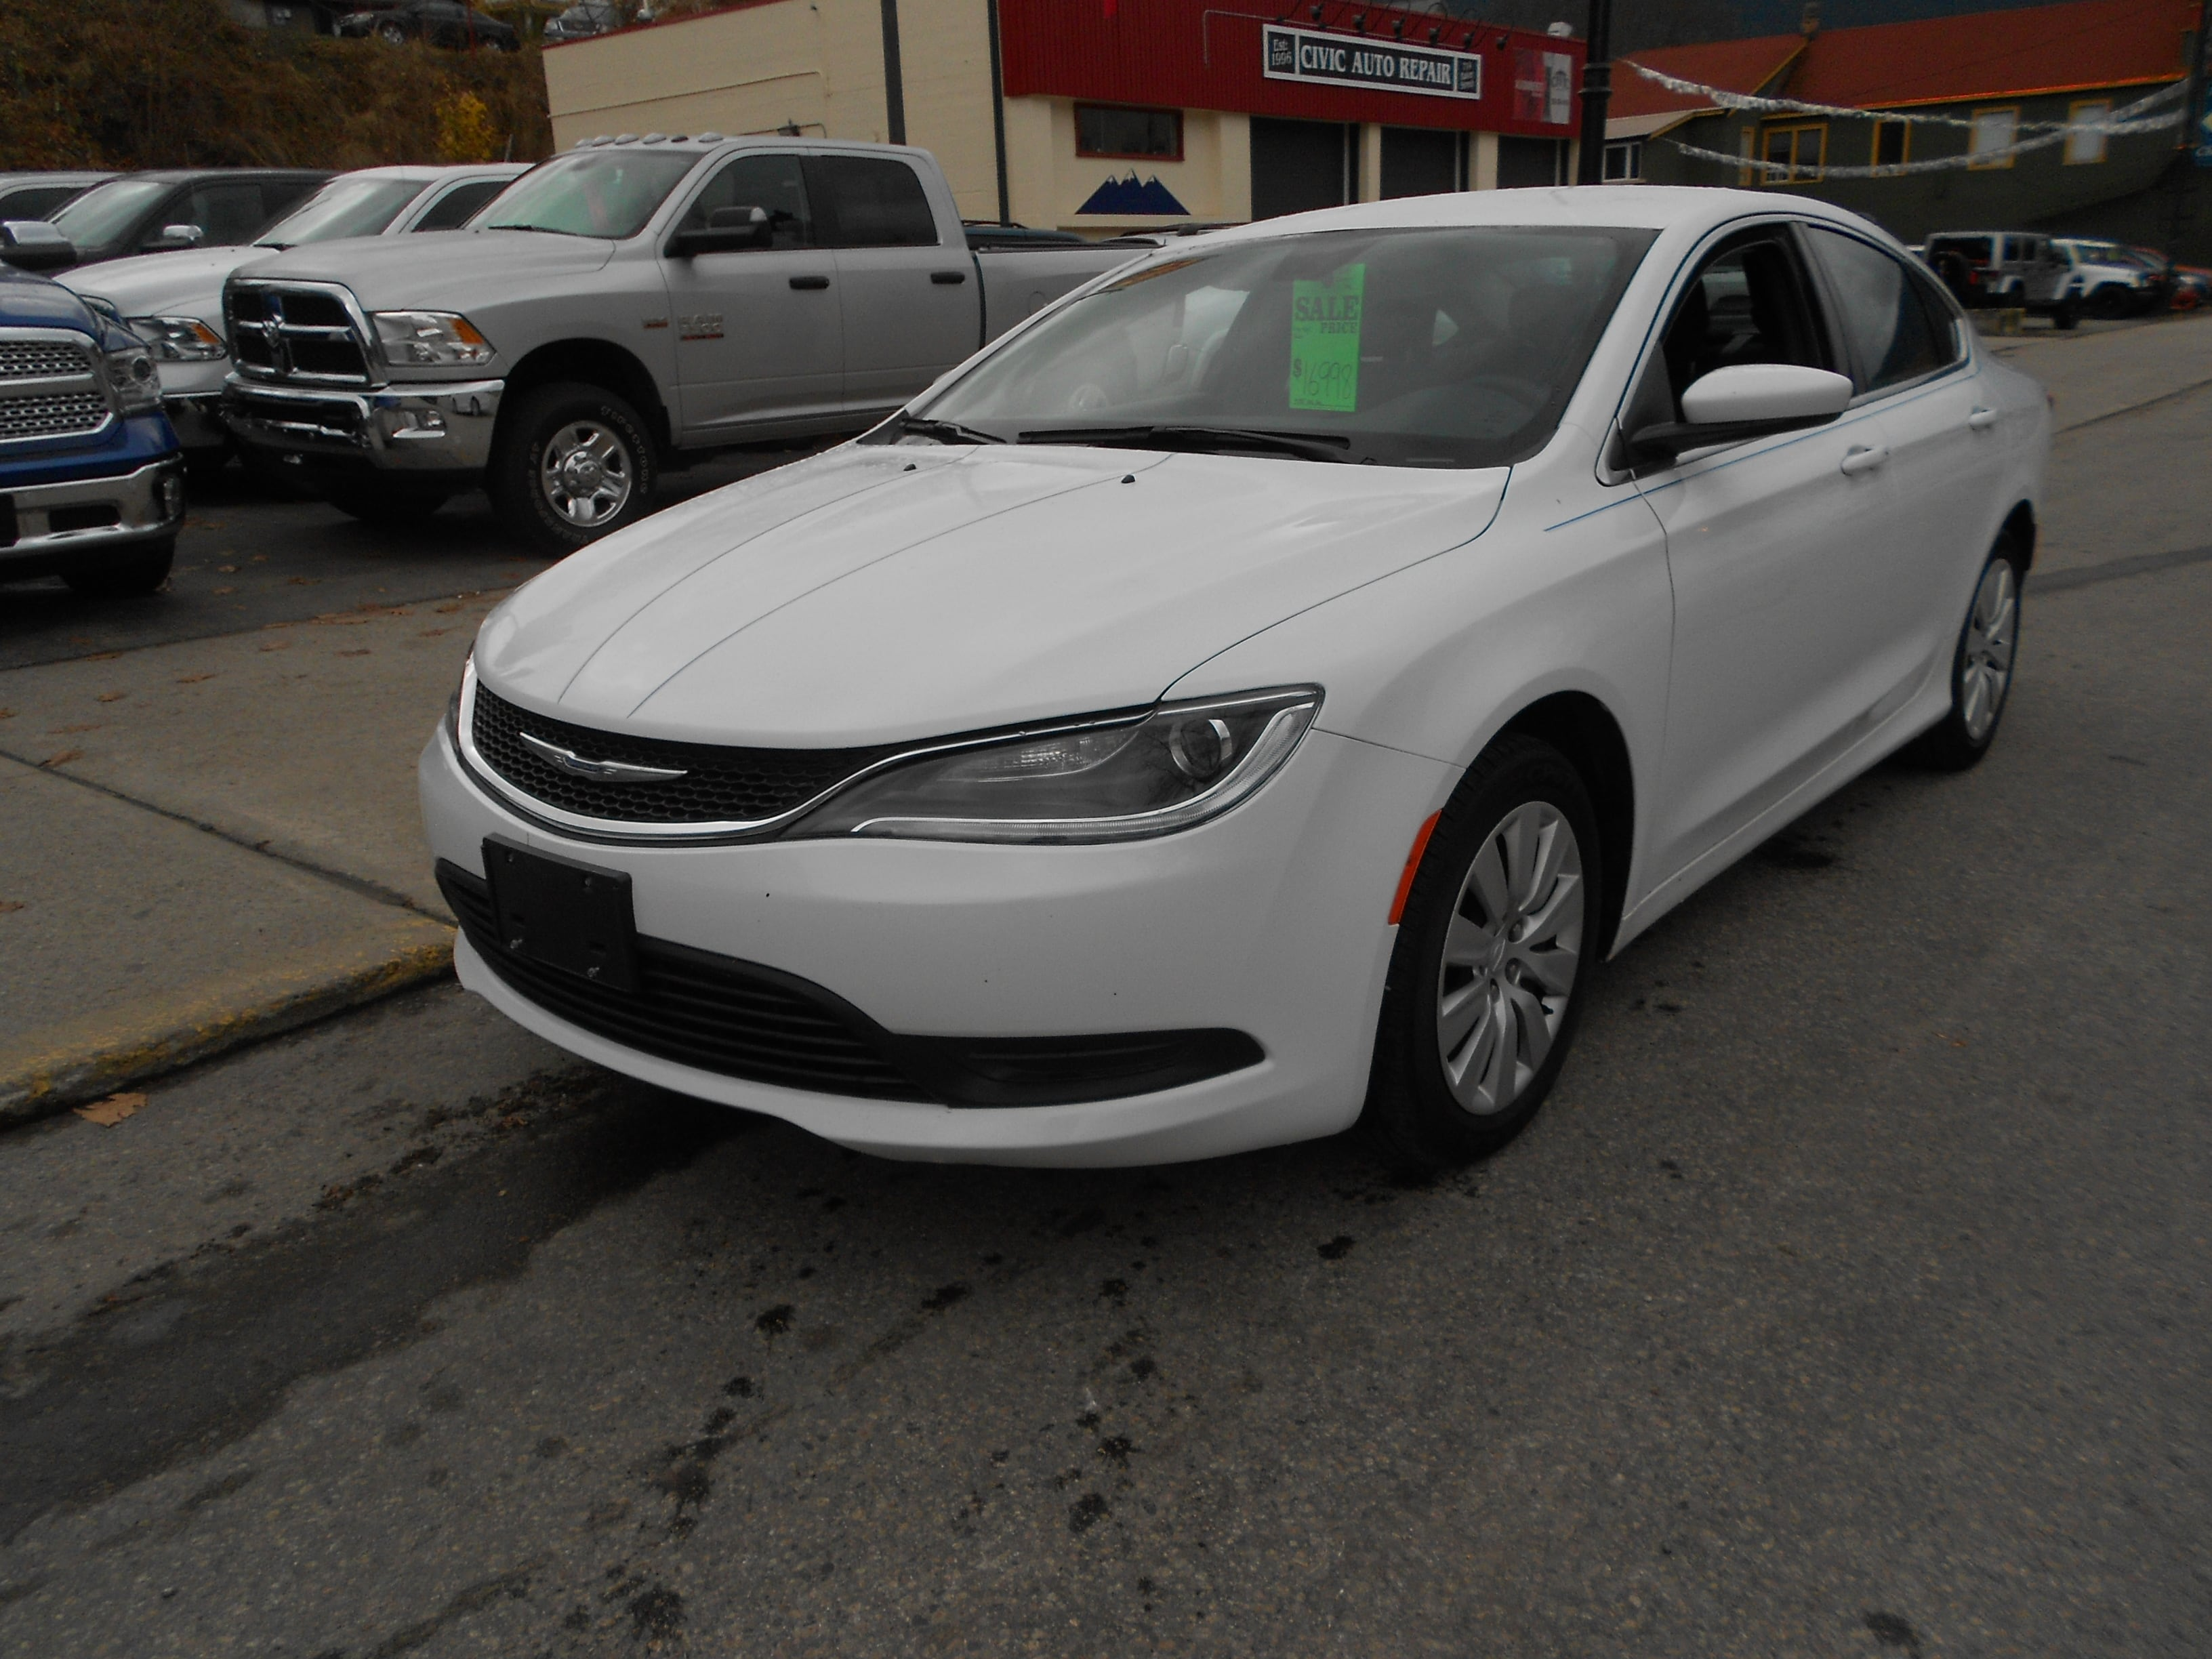 2015 Chrysler 200 LX 4CYL 9SPD AUTO Sedan